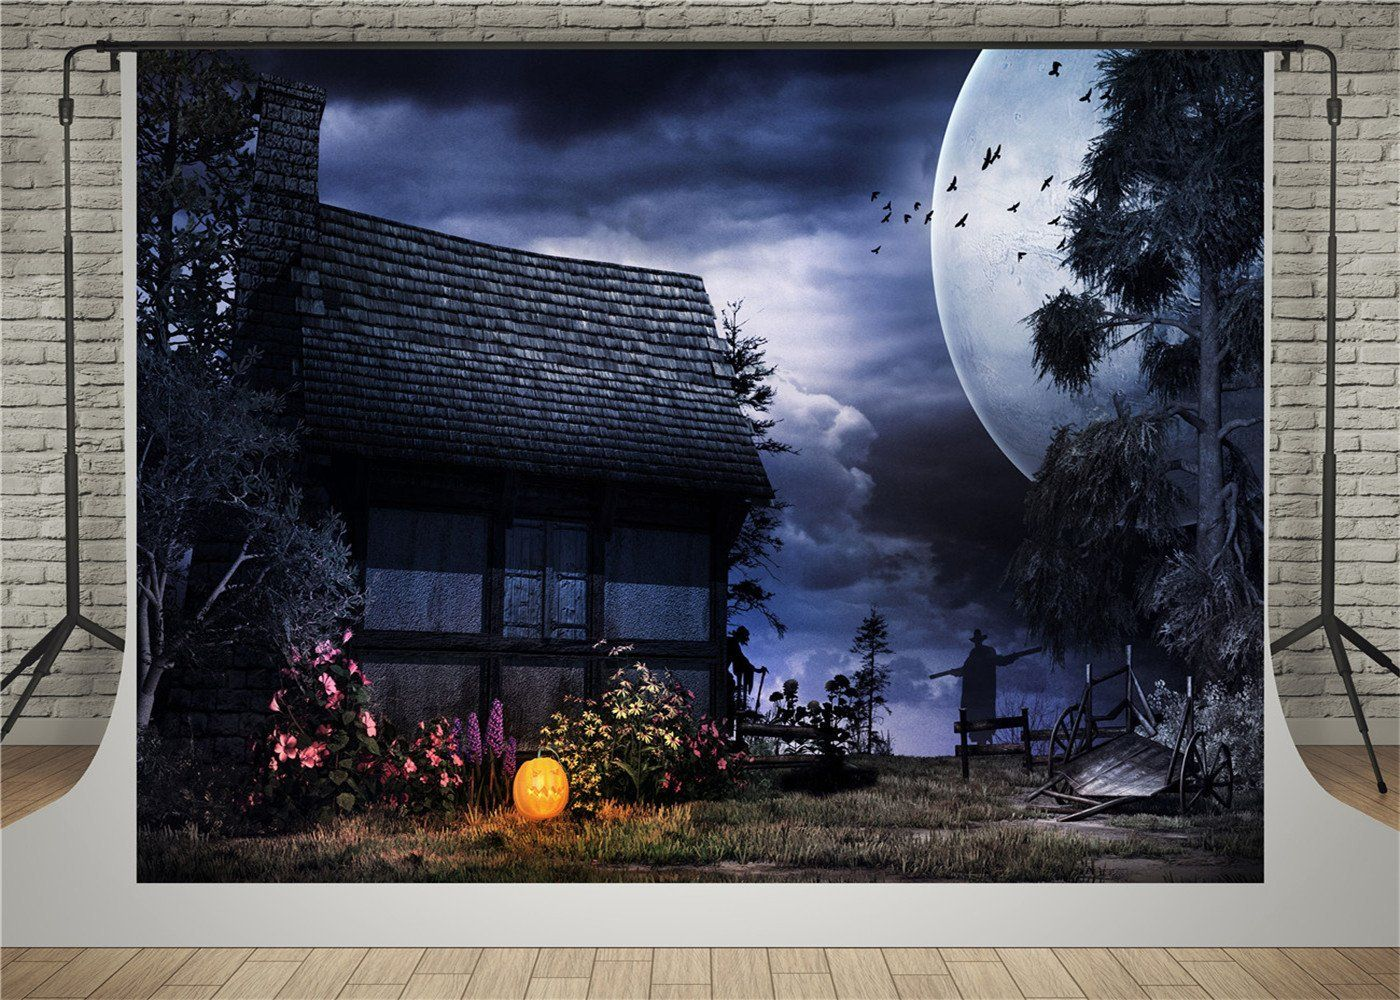 AIIKES 7x5ft Halloween Pumpkin Backdrop for Nightmare Before Moon Themed Photography Background Birthday Baby Shower Photo Backdrop Studio Pictures Party Home Decor Decoration 11-640